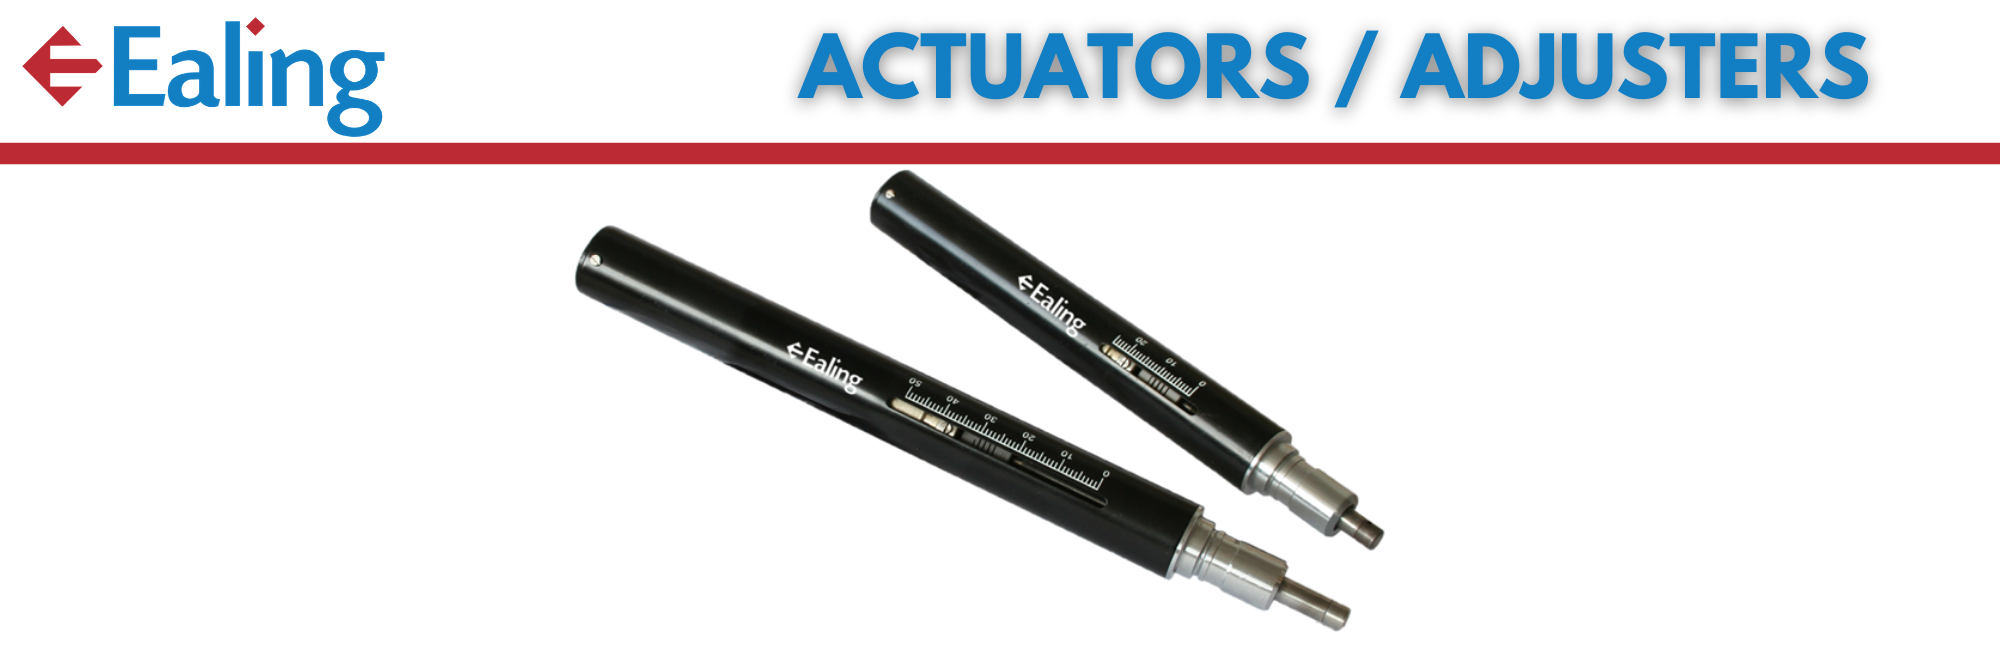 Actuators/Adjusters